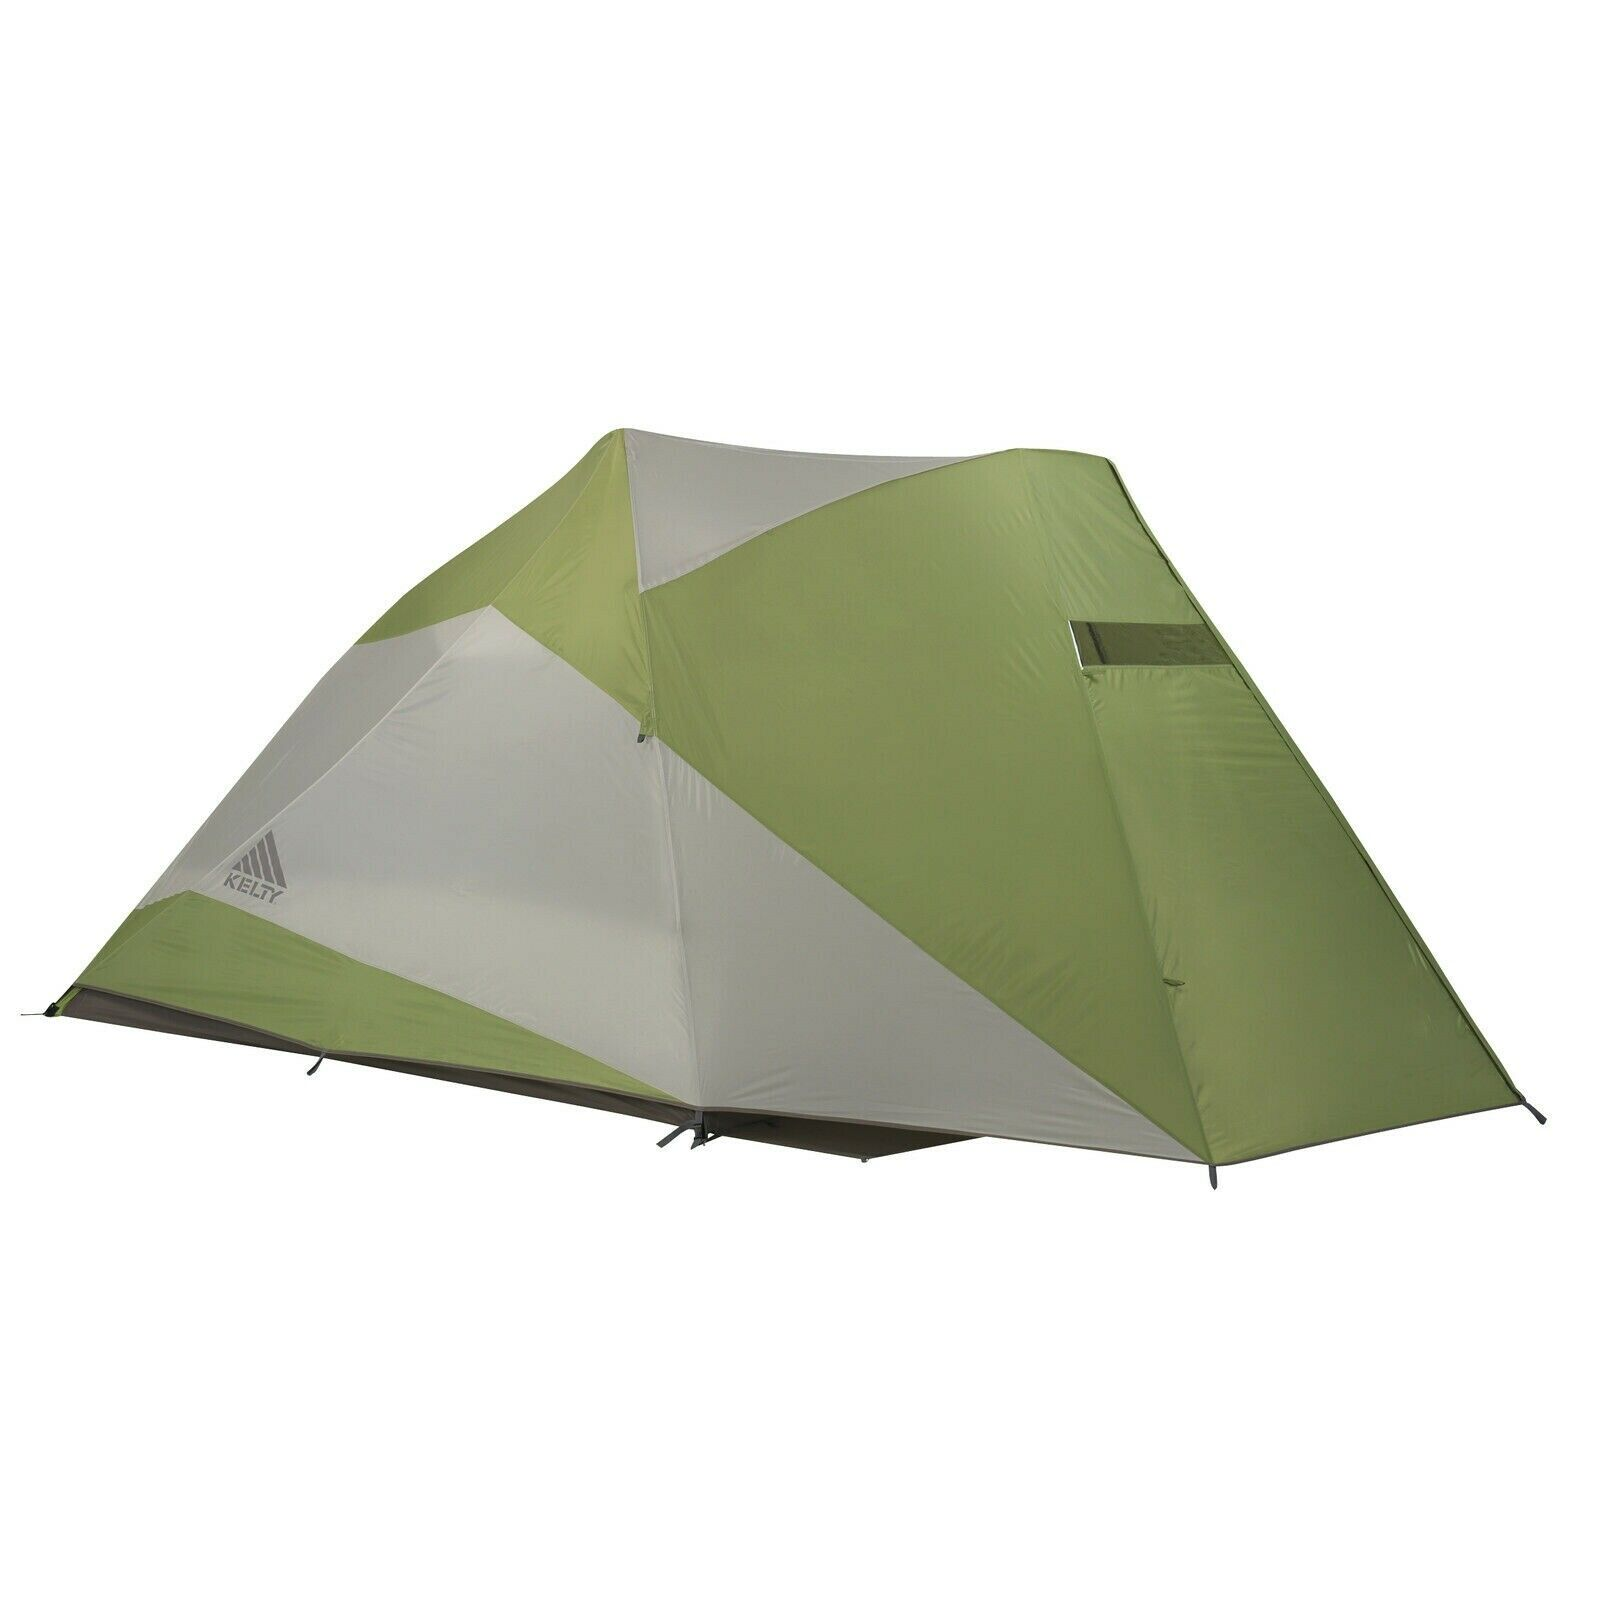 Kelty Como 6, Sturdy 6 Man 3 Seasons Family Tent, New RRP .99